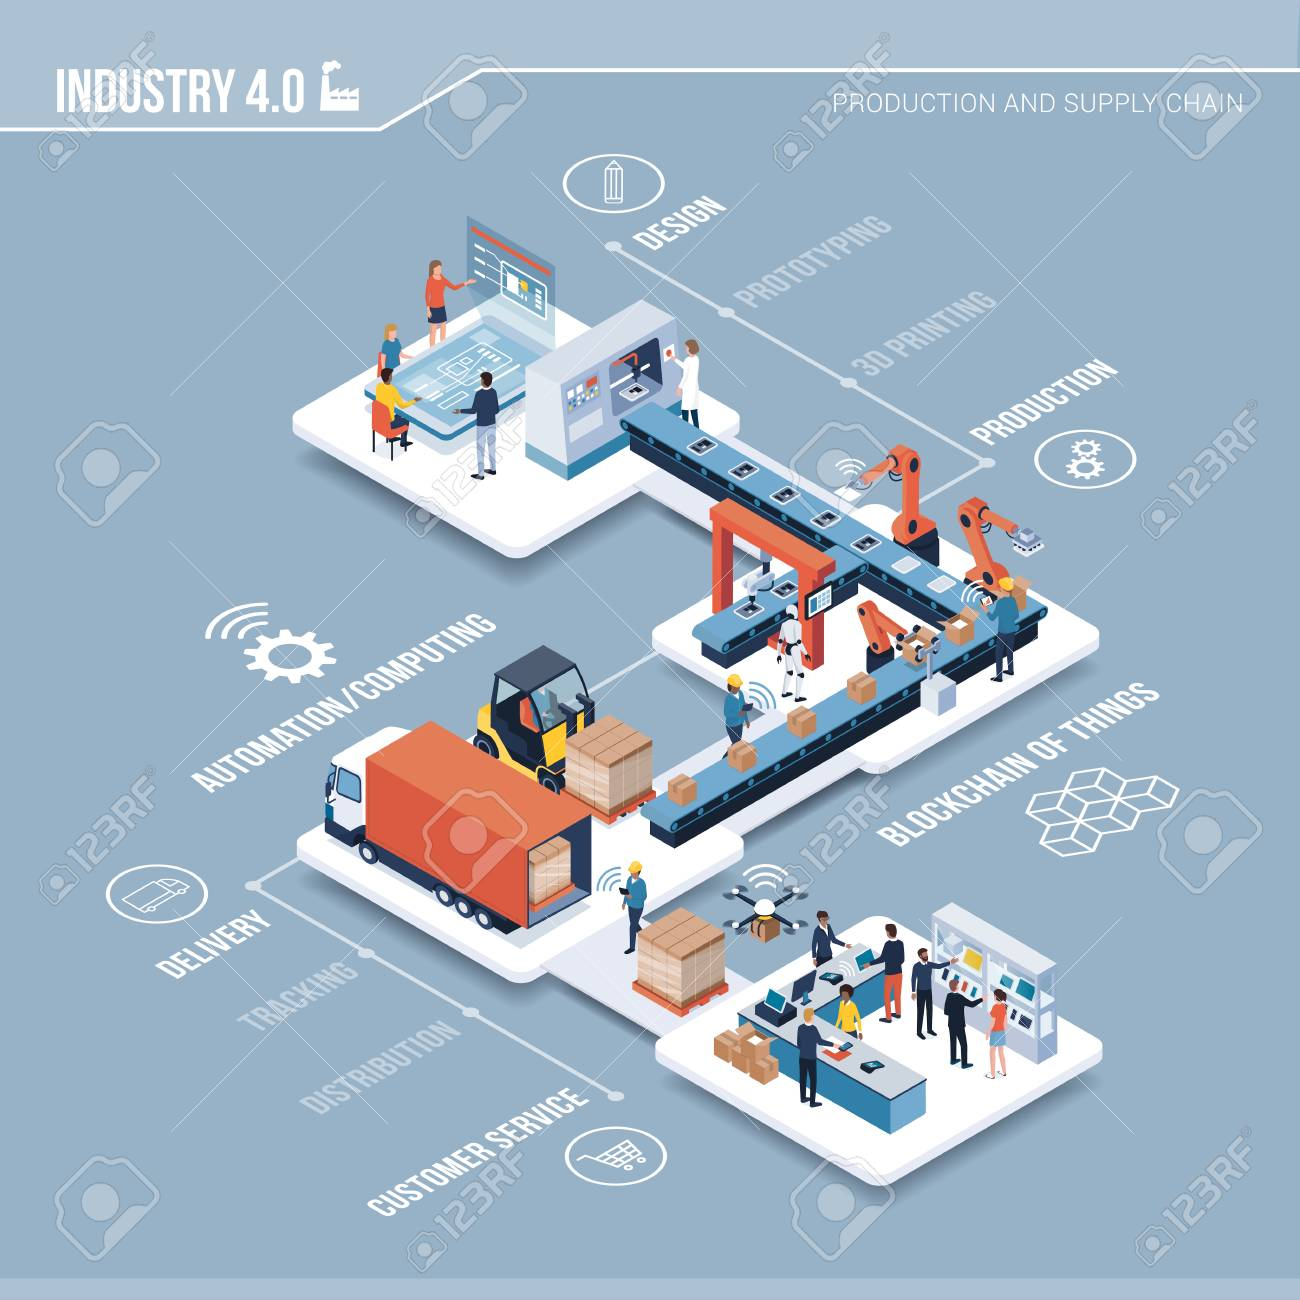 Innovative contemporary smart industry: product design, automated production line, delivery and distribution with people, robots and machinery: industry 4.0 infographic - 111880944